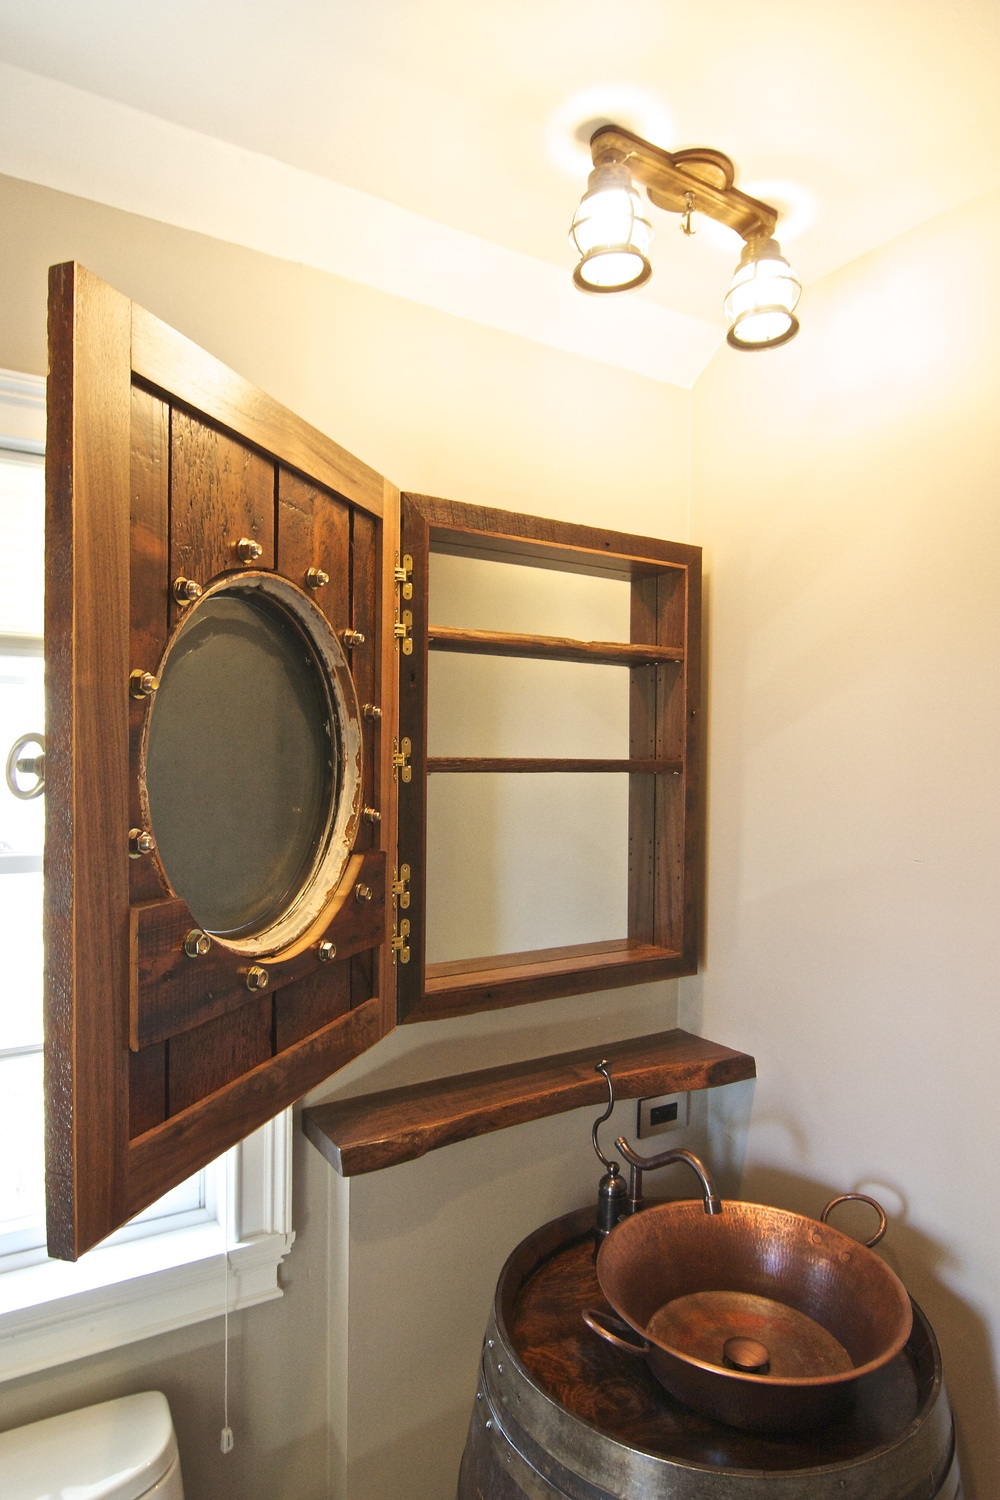 The Porthole Itself Weighed In Around 40lbs But The Five Soss Hinges